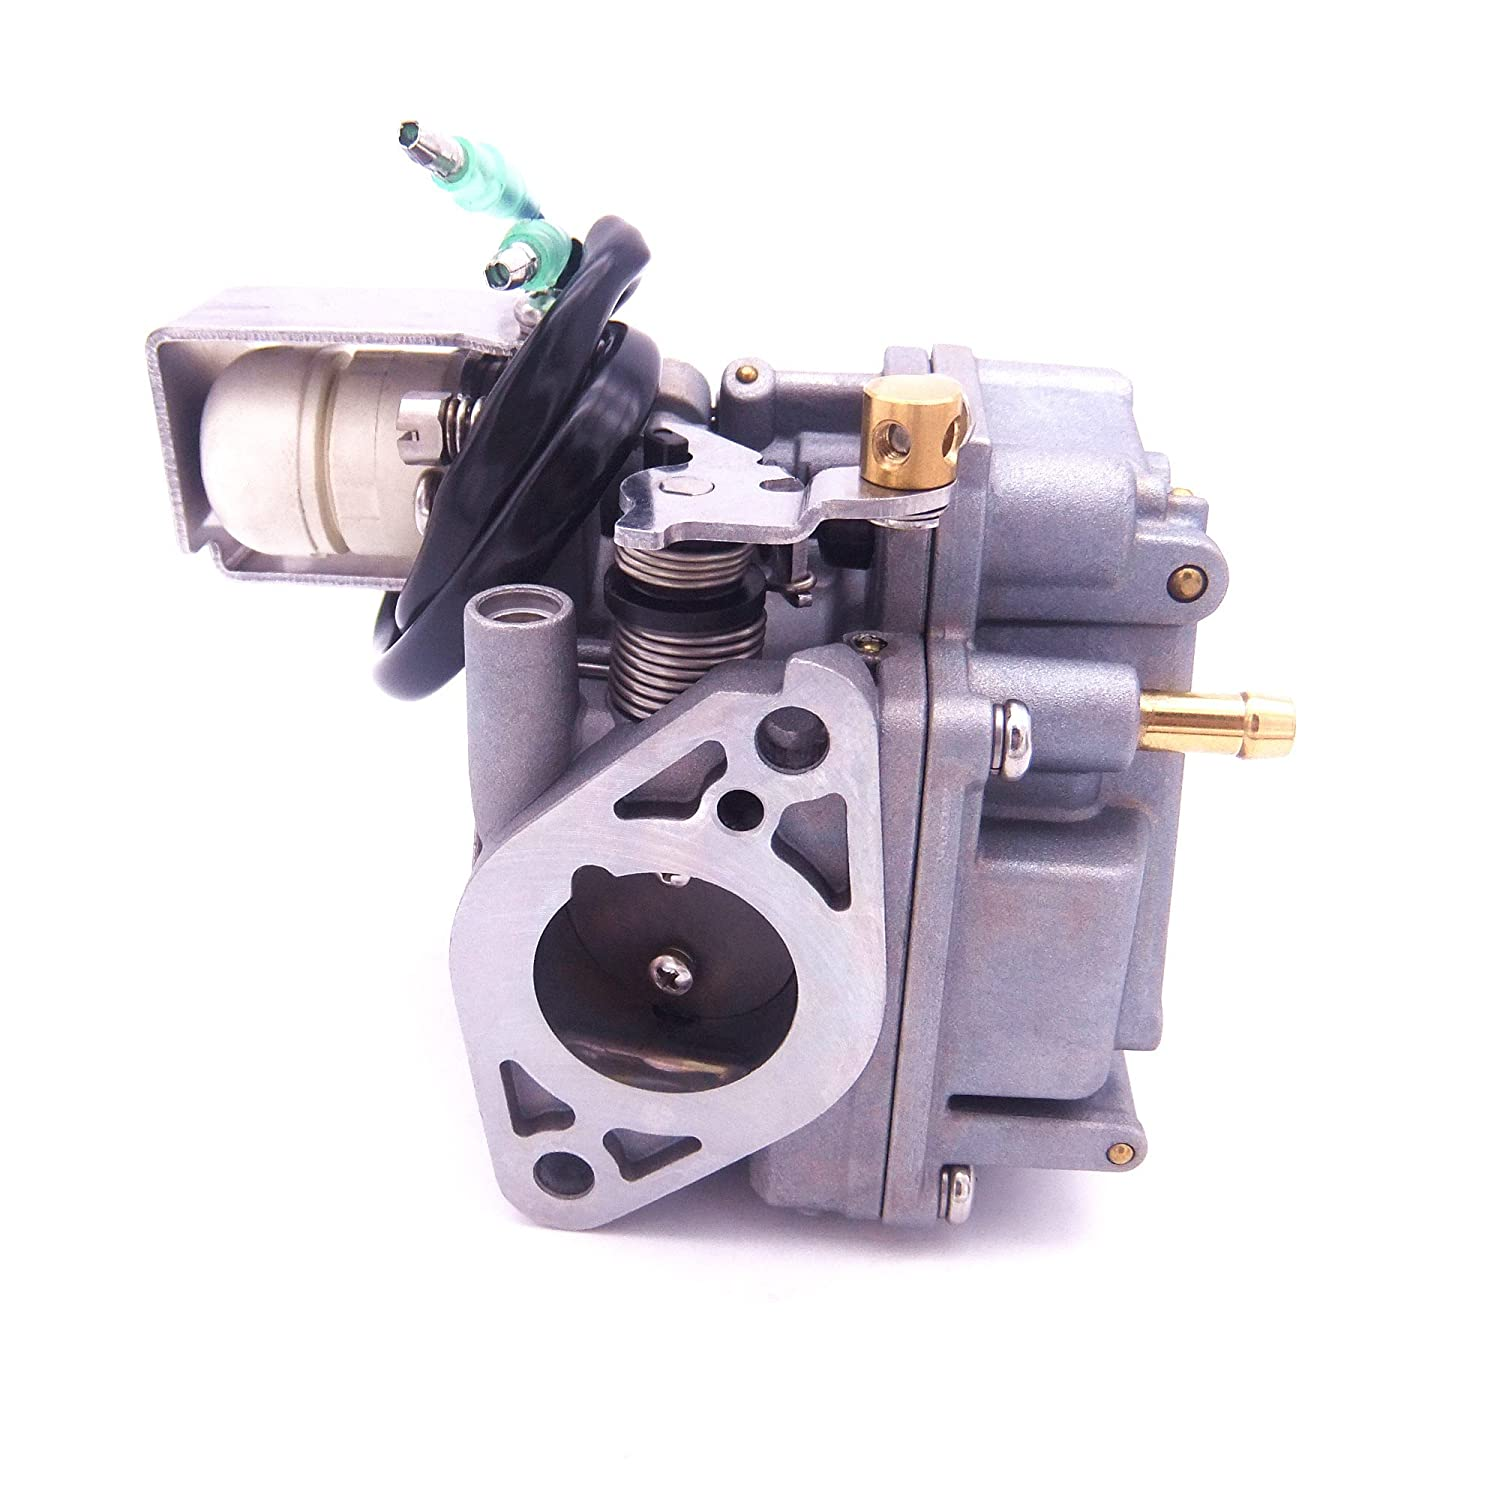 boat motor carburetor assy 6ah 14301 00 6ah 14301 01 for yamaha 4 stroke f20 outboard engine Yamaha F75 Outboard